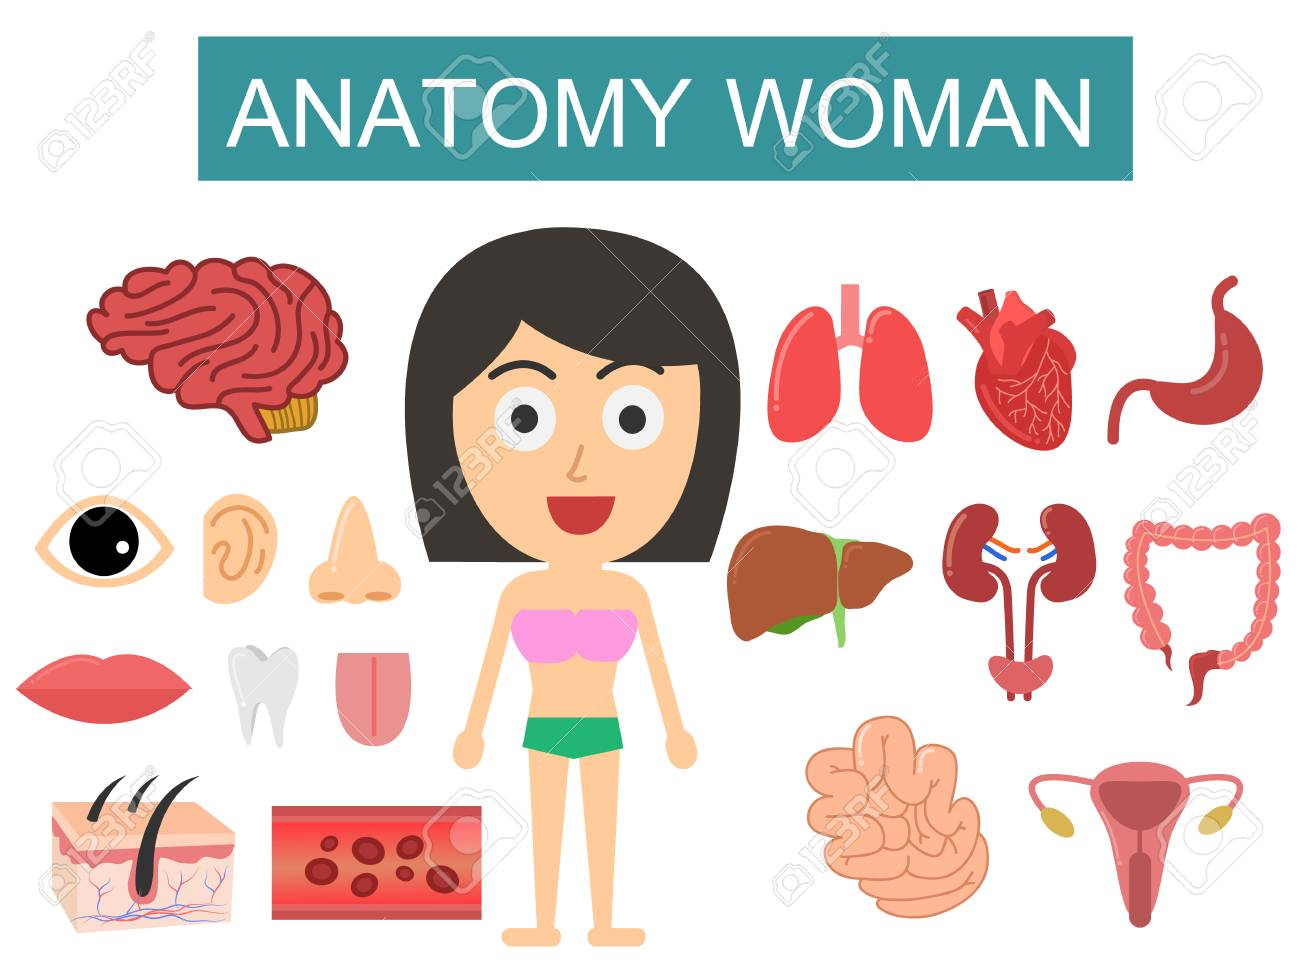 Human Body Anatomy Woman On White Background Royalty Free Cliparts ...